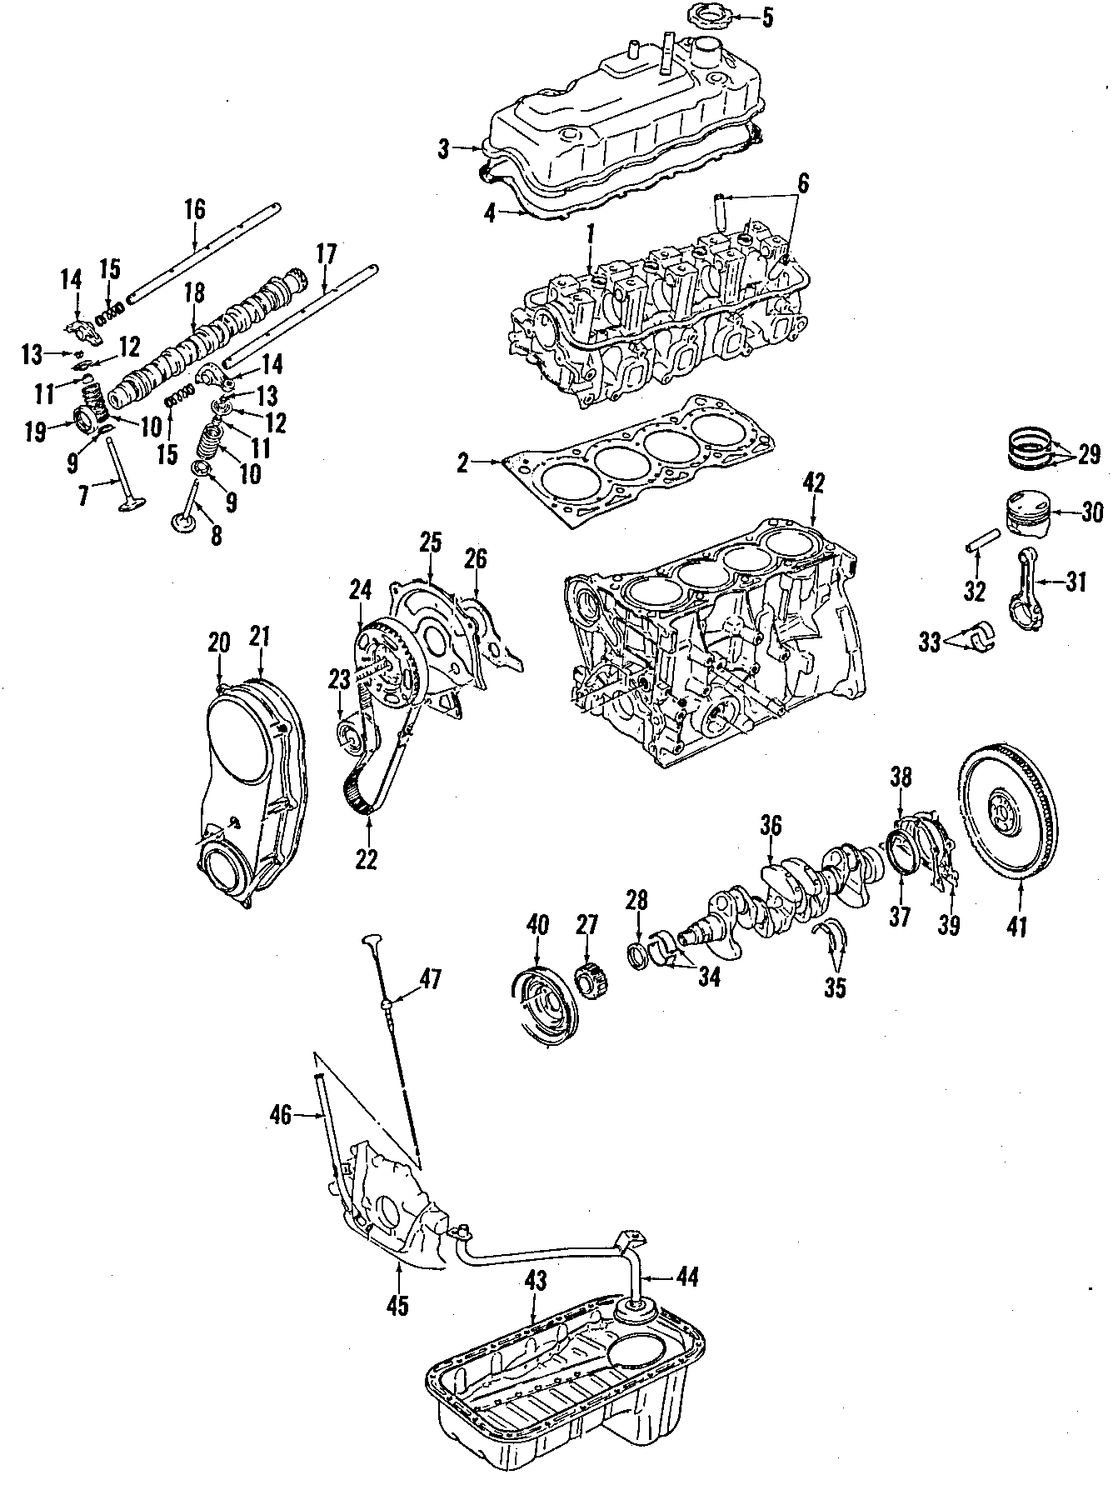 suzuki samurai engine gasket diagram